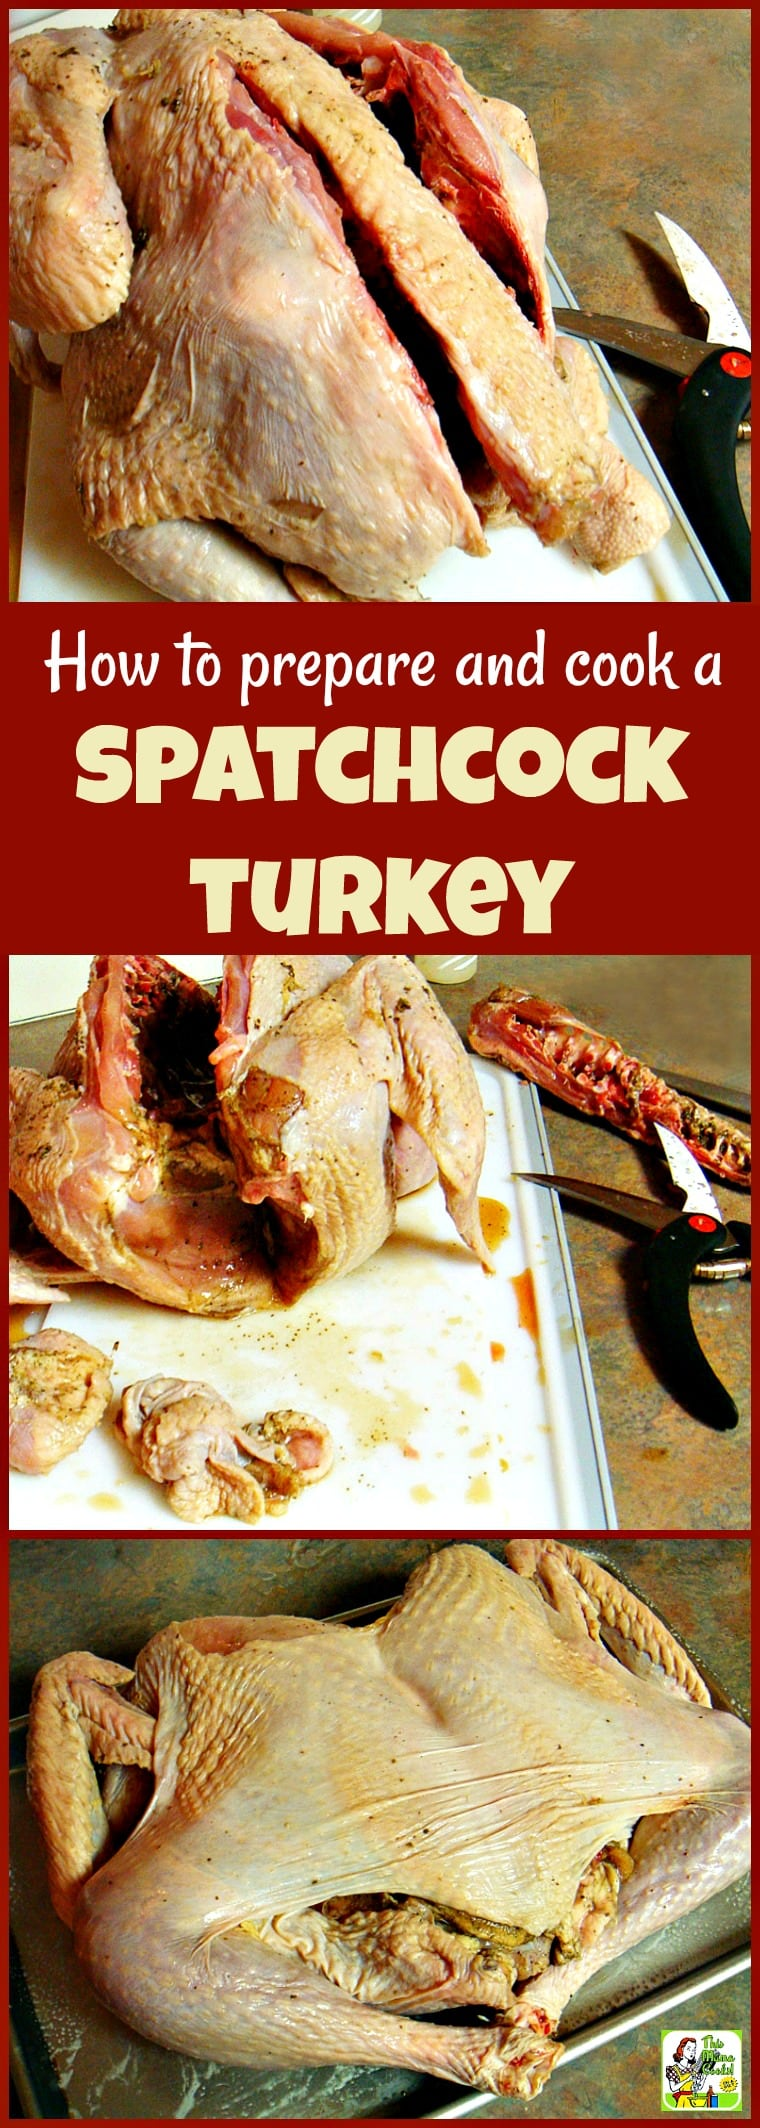 If you want to shorten turkey cooking time in the oven or in the smoker grill, spatchcock or butterfly your turkey! Learn how to prepare and cook a spatchcocked turkey for Thanksgiving, Christmas, Easter, or BBQ cookouts. #turkey #thanksgiving #thanksgivingrecipes #Christmas #Christmasrecipes #Easter #Easterrecipes #grill #grilling #grillrecipes #grillingrecipes #smoking #roasting #recipe #recipeoftheday #glutenfree #christmas #bbq